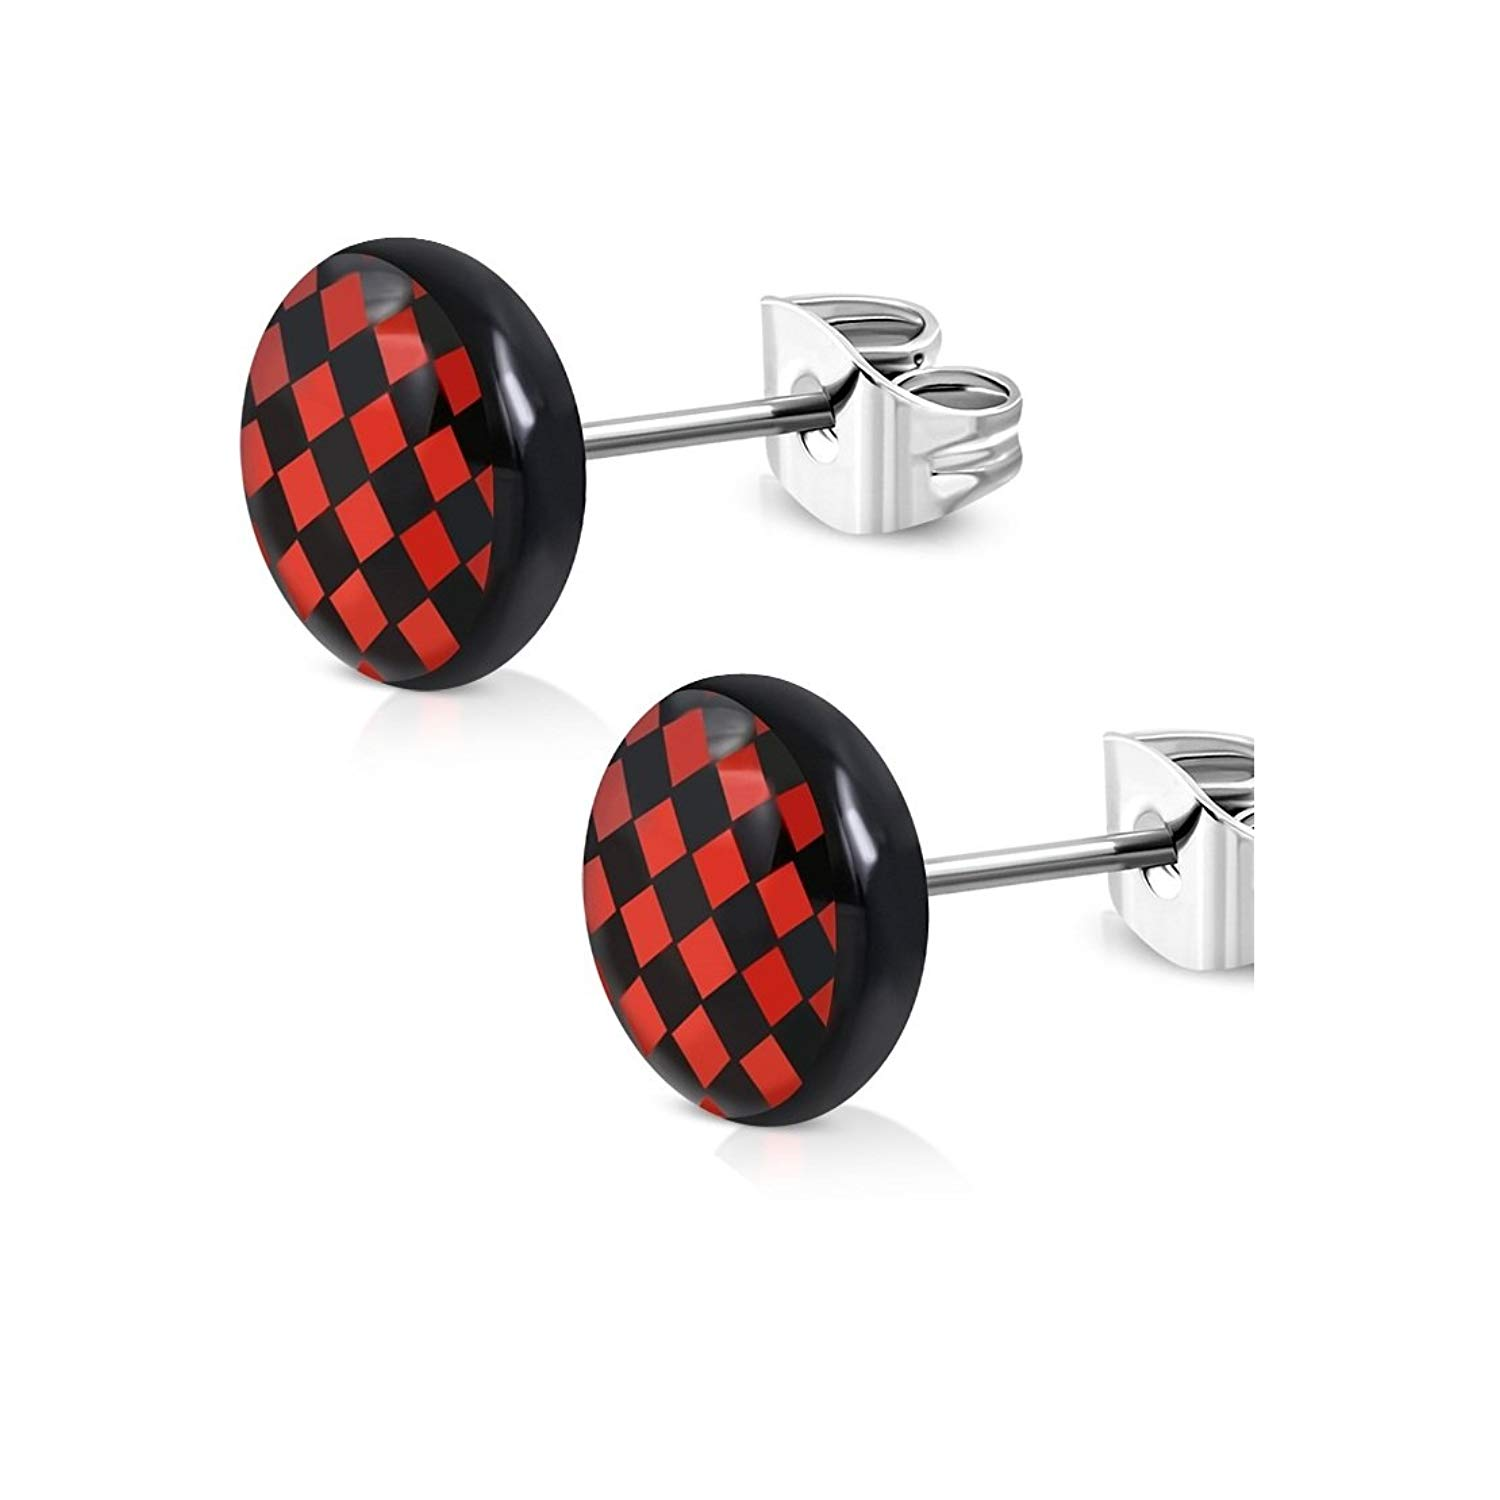 Stainless Steel 3 Color Checker Circle Stud Earrings pair